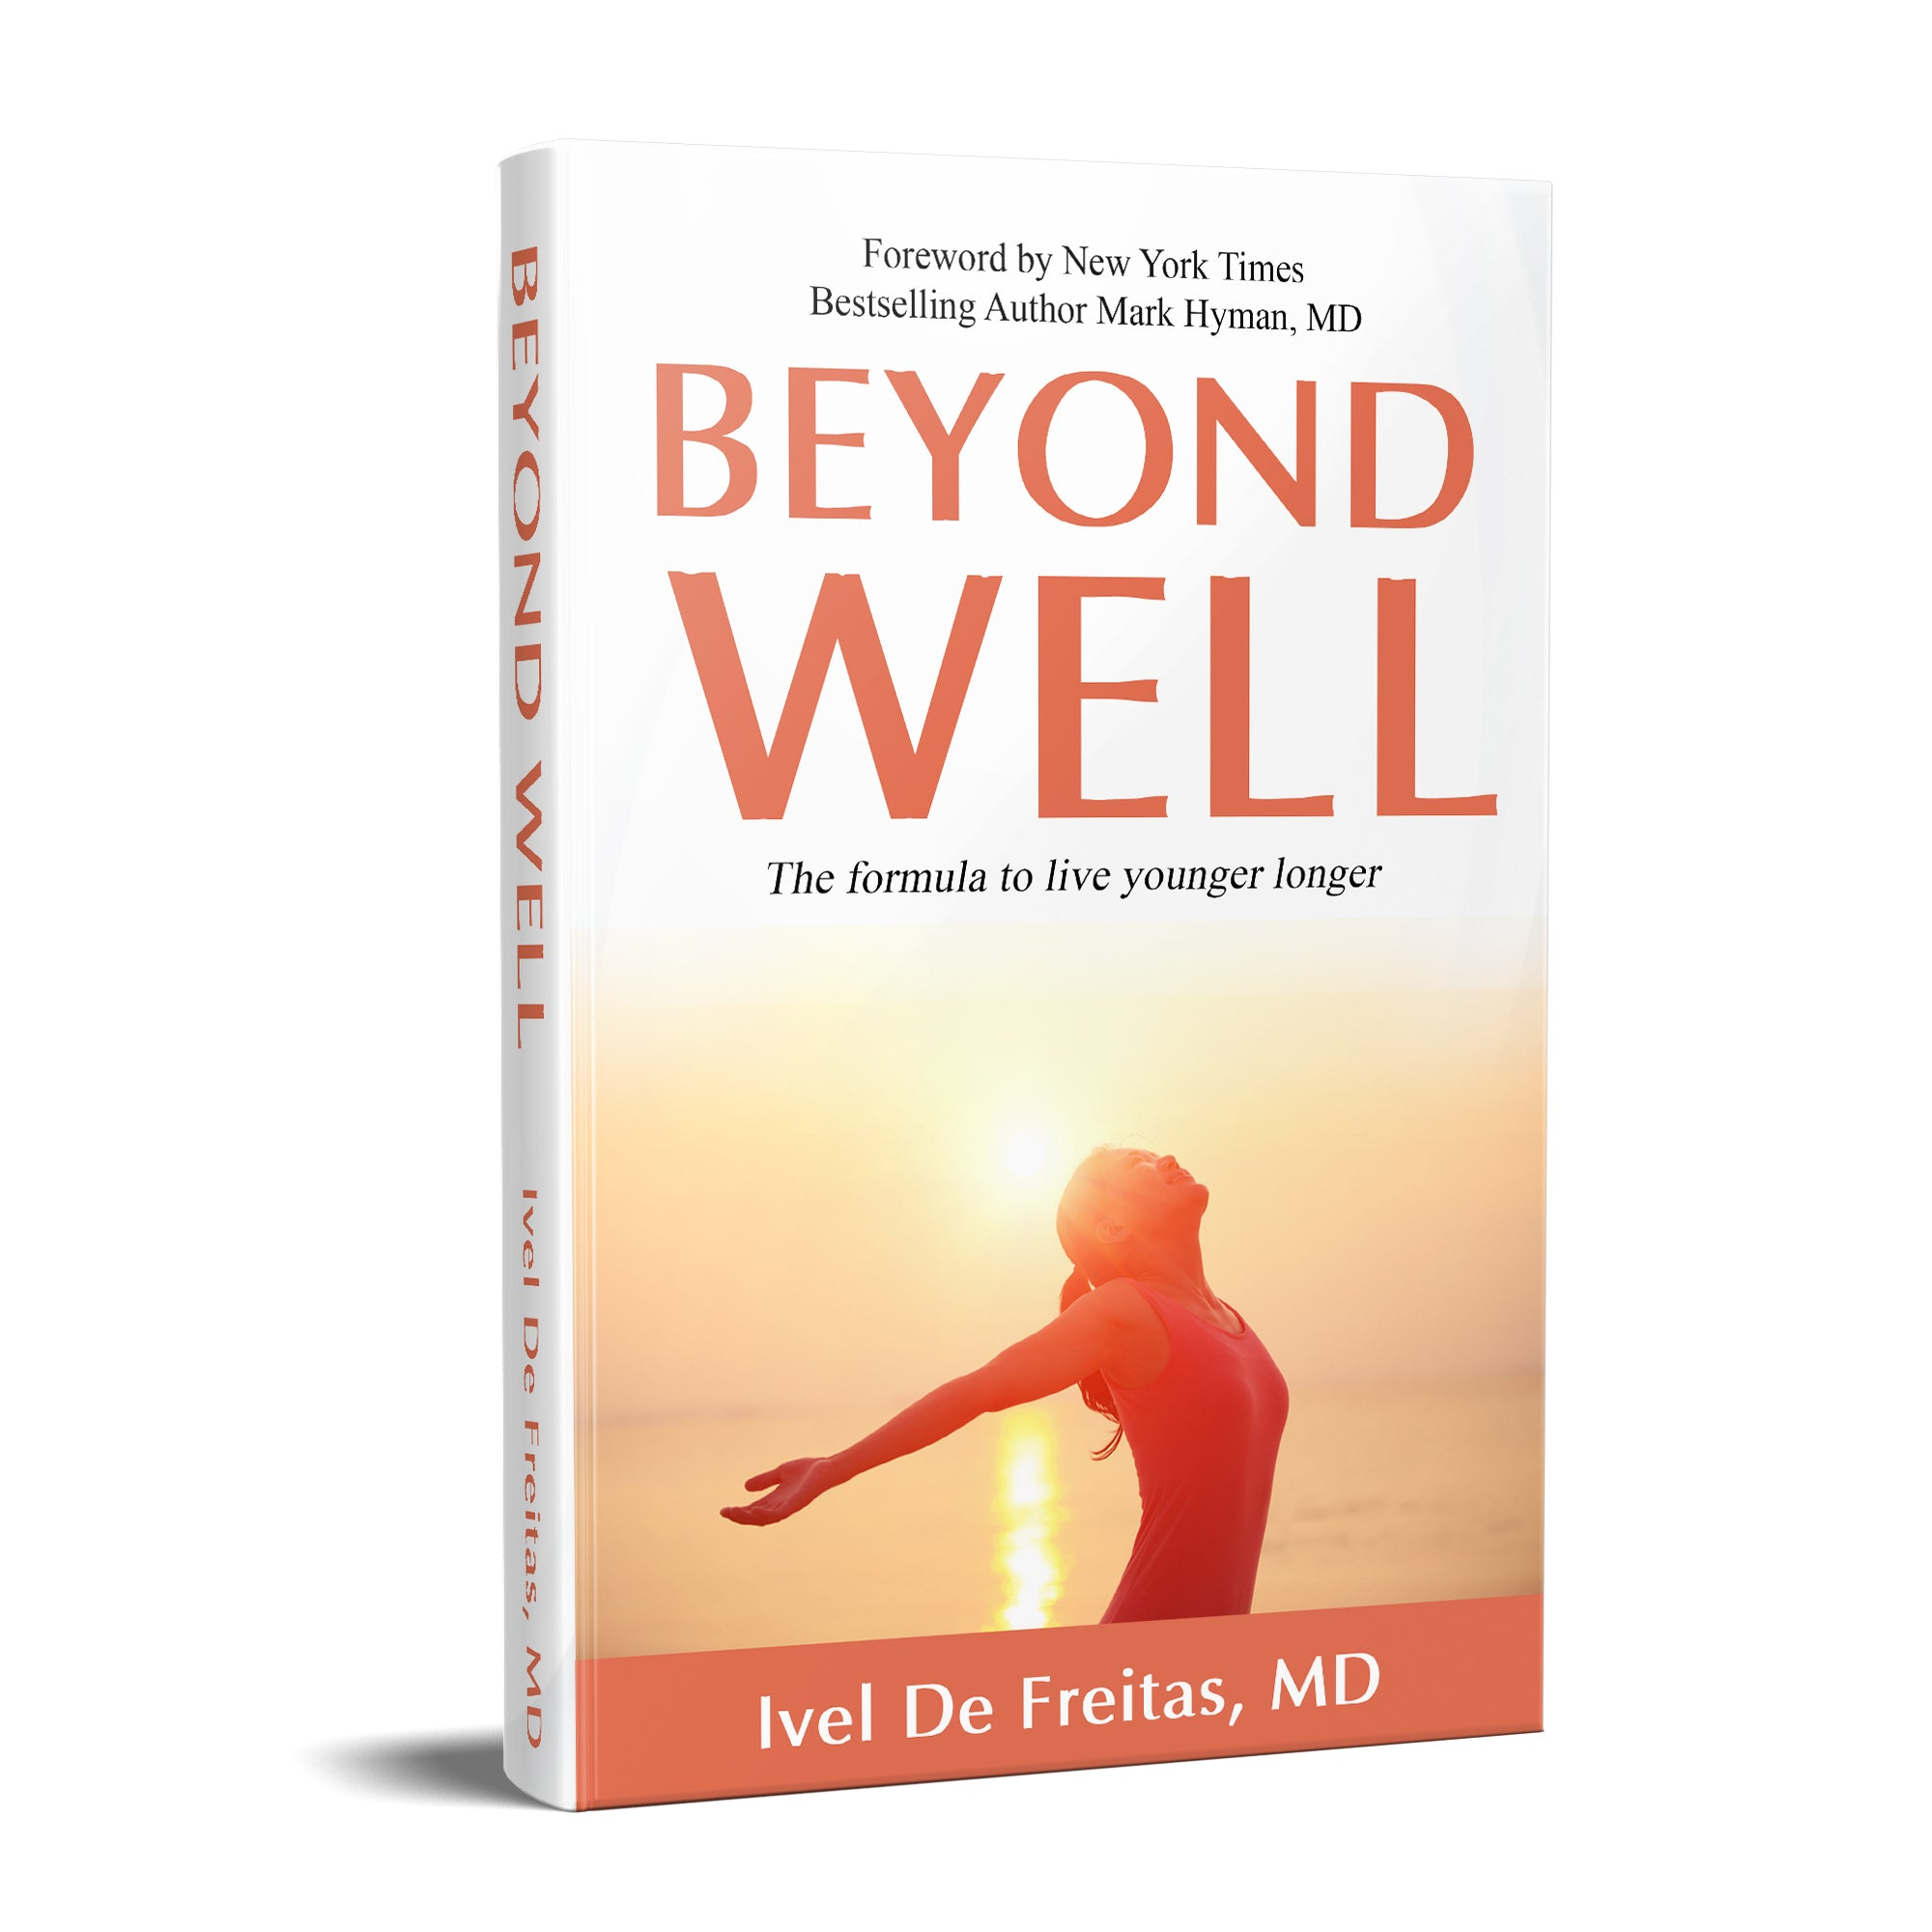 BEYOND WELL THE BOOK